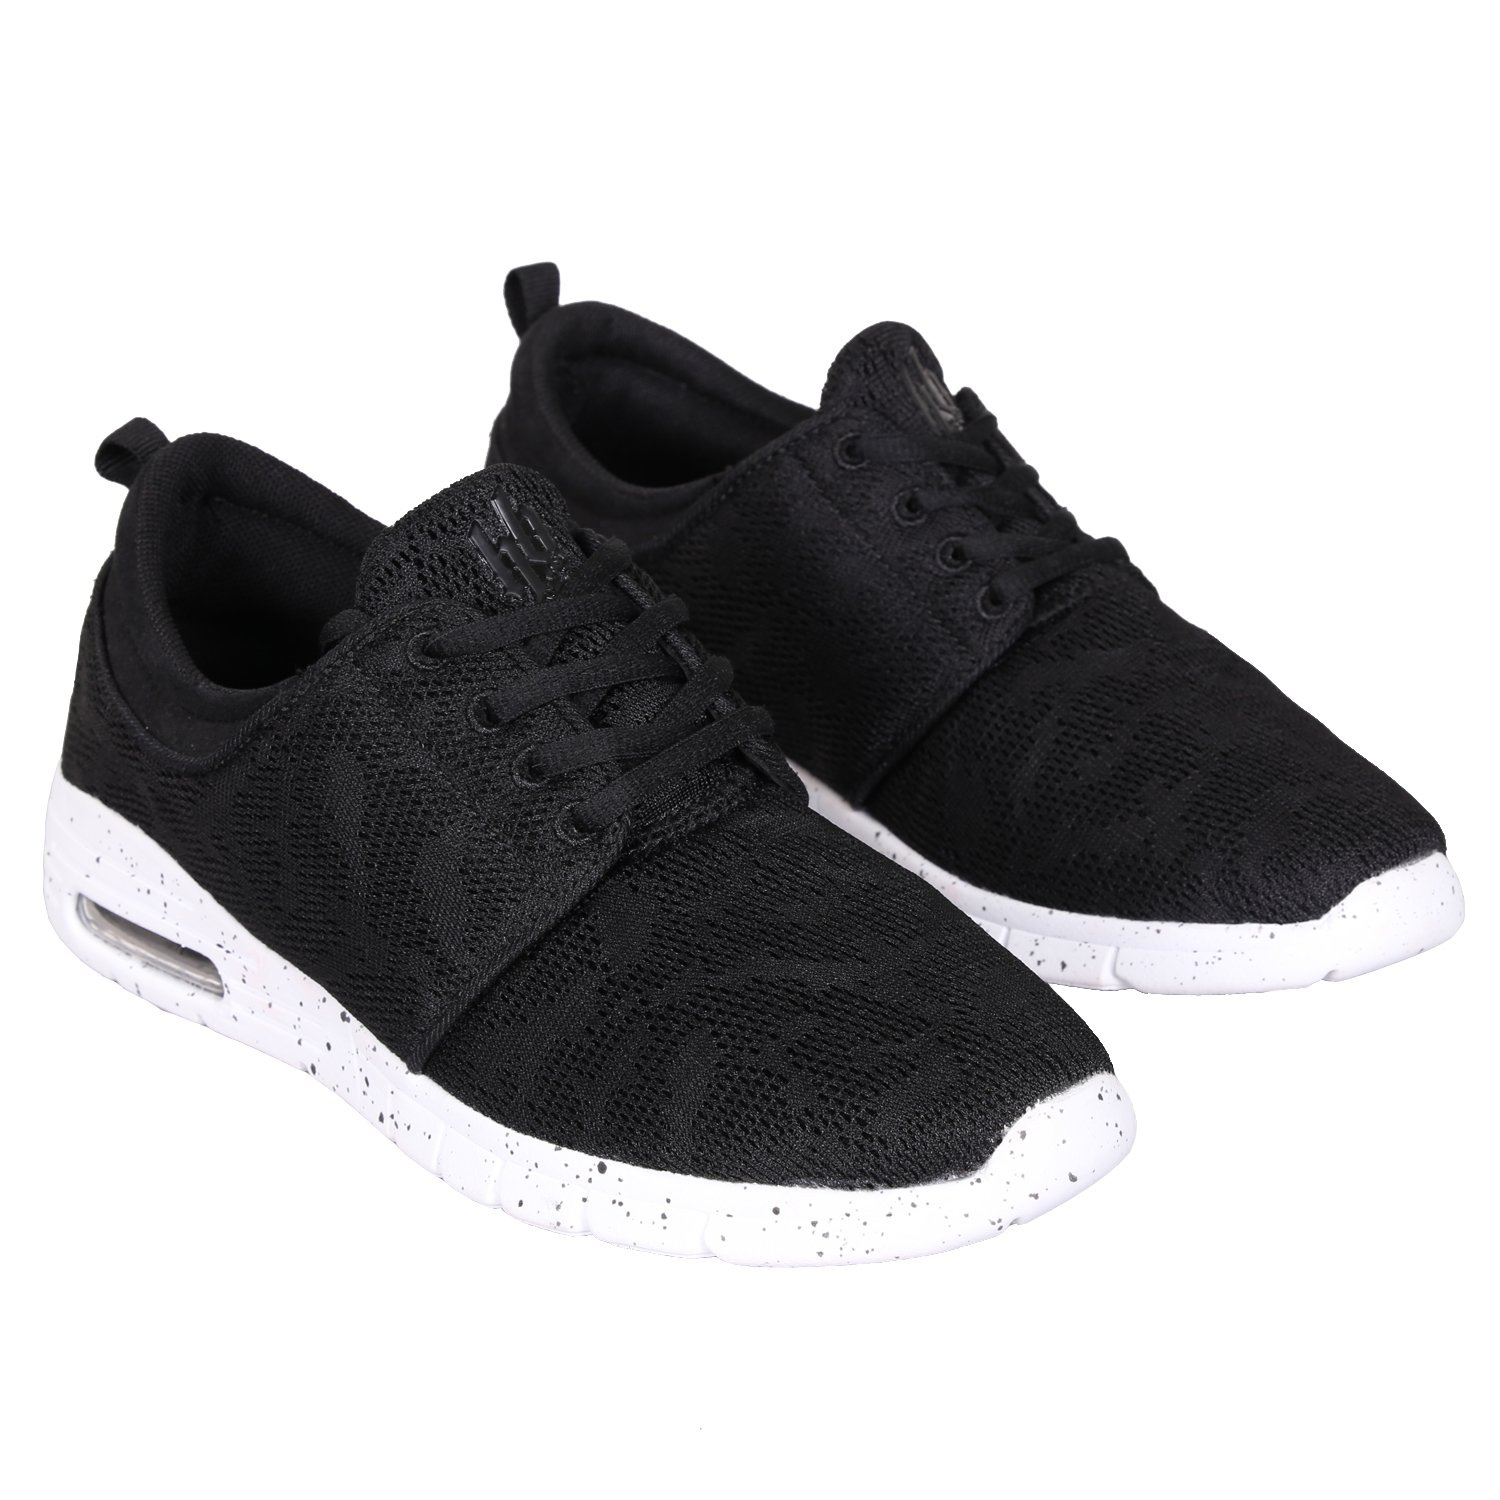 Hoodboyz Space Plain Herren Low Sneaker Schwarz